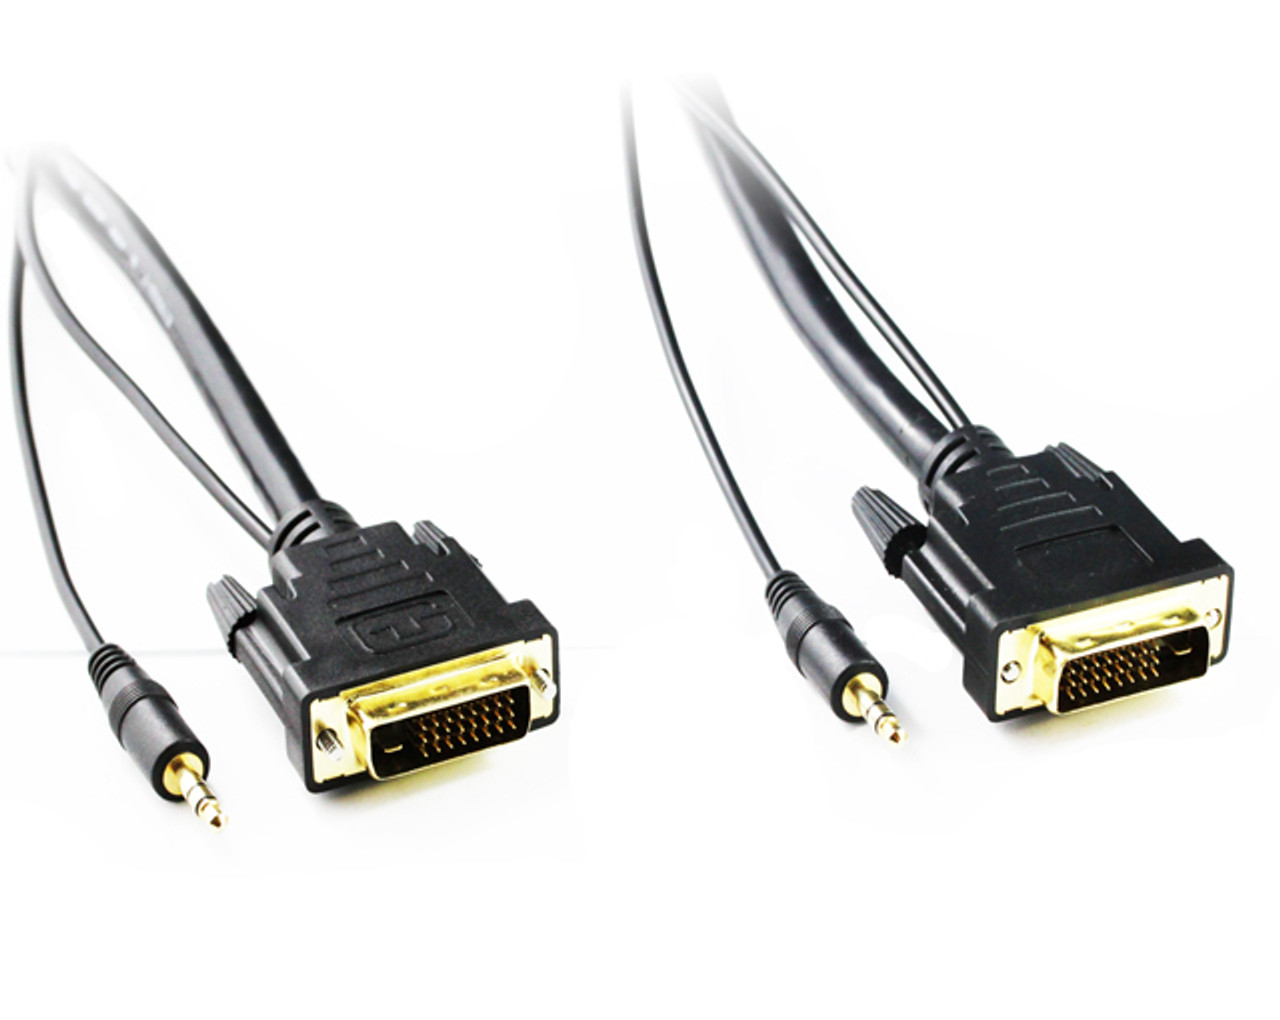 Product image for 3M DVI-D to DVI-D Cable with 3.5mm Audio | CX Computer Superstore